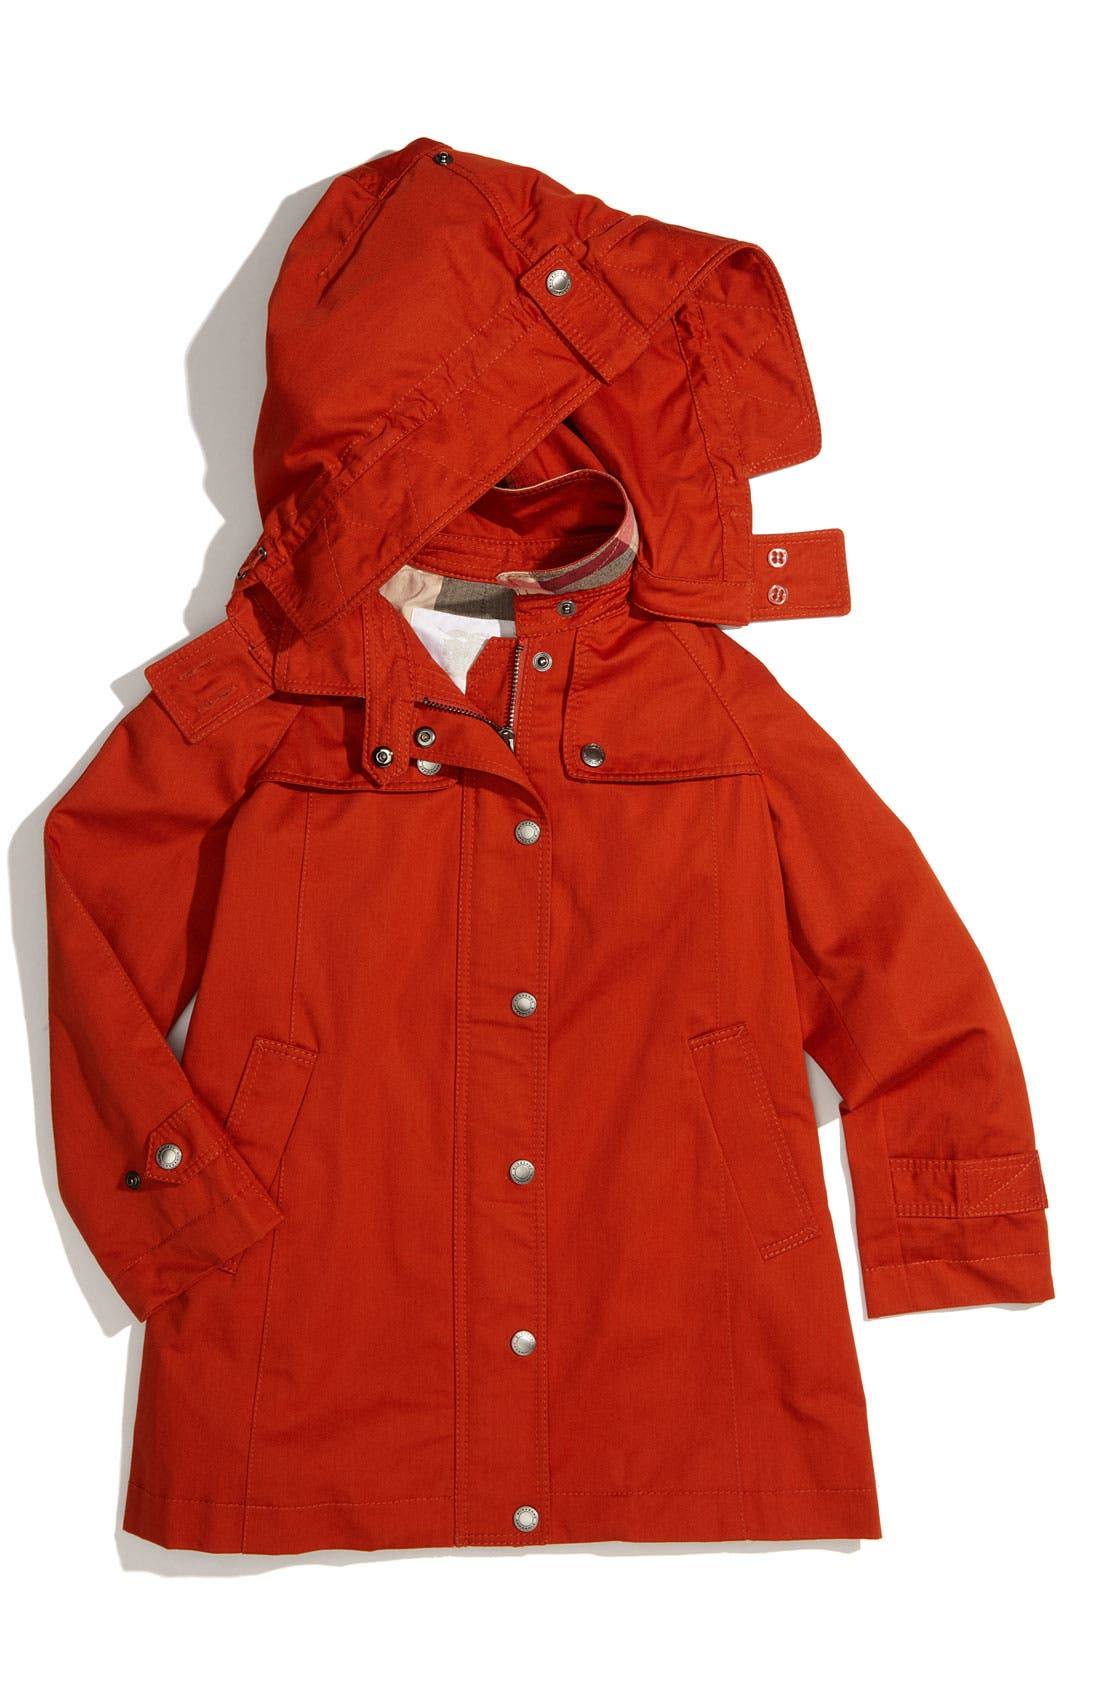 Alternate Image 1 Selected - Burberry Hooded Trench Coat (Little Girls)